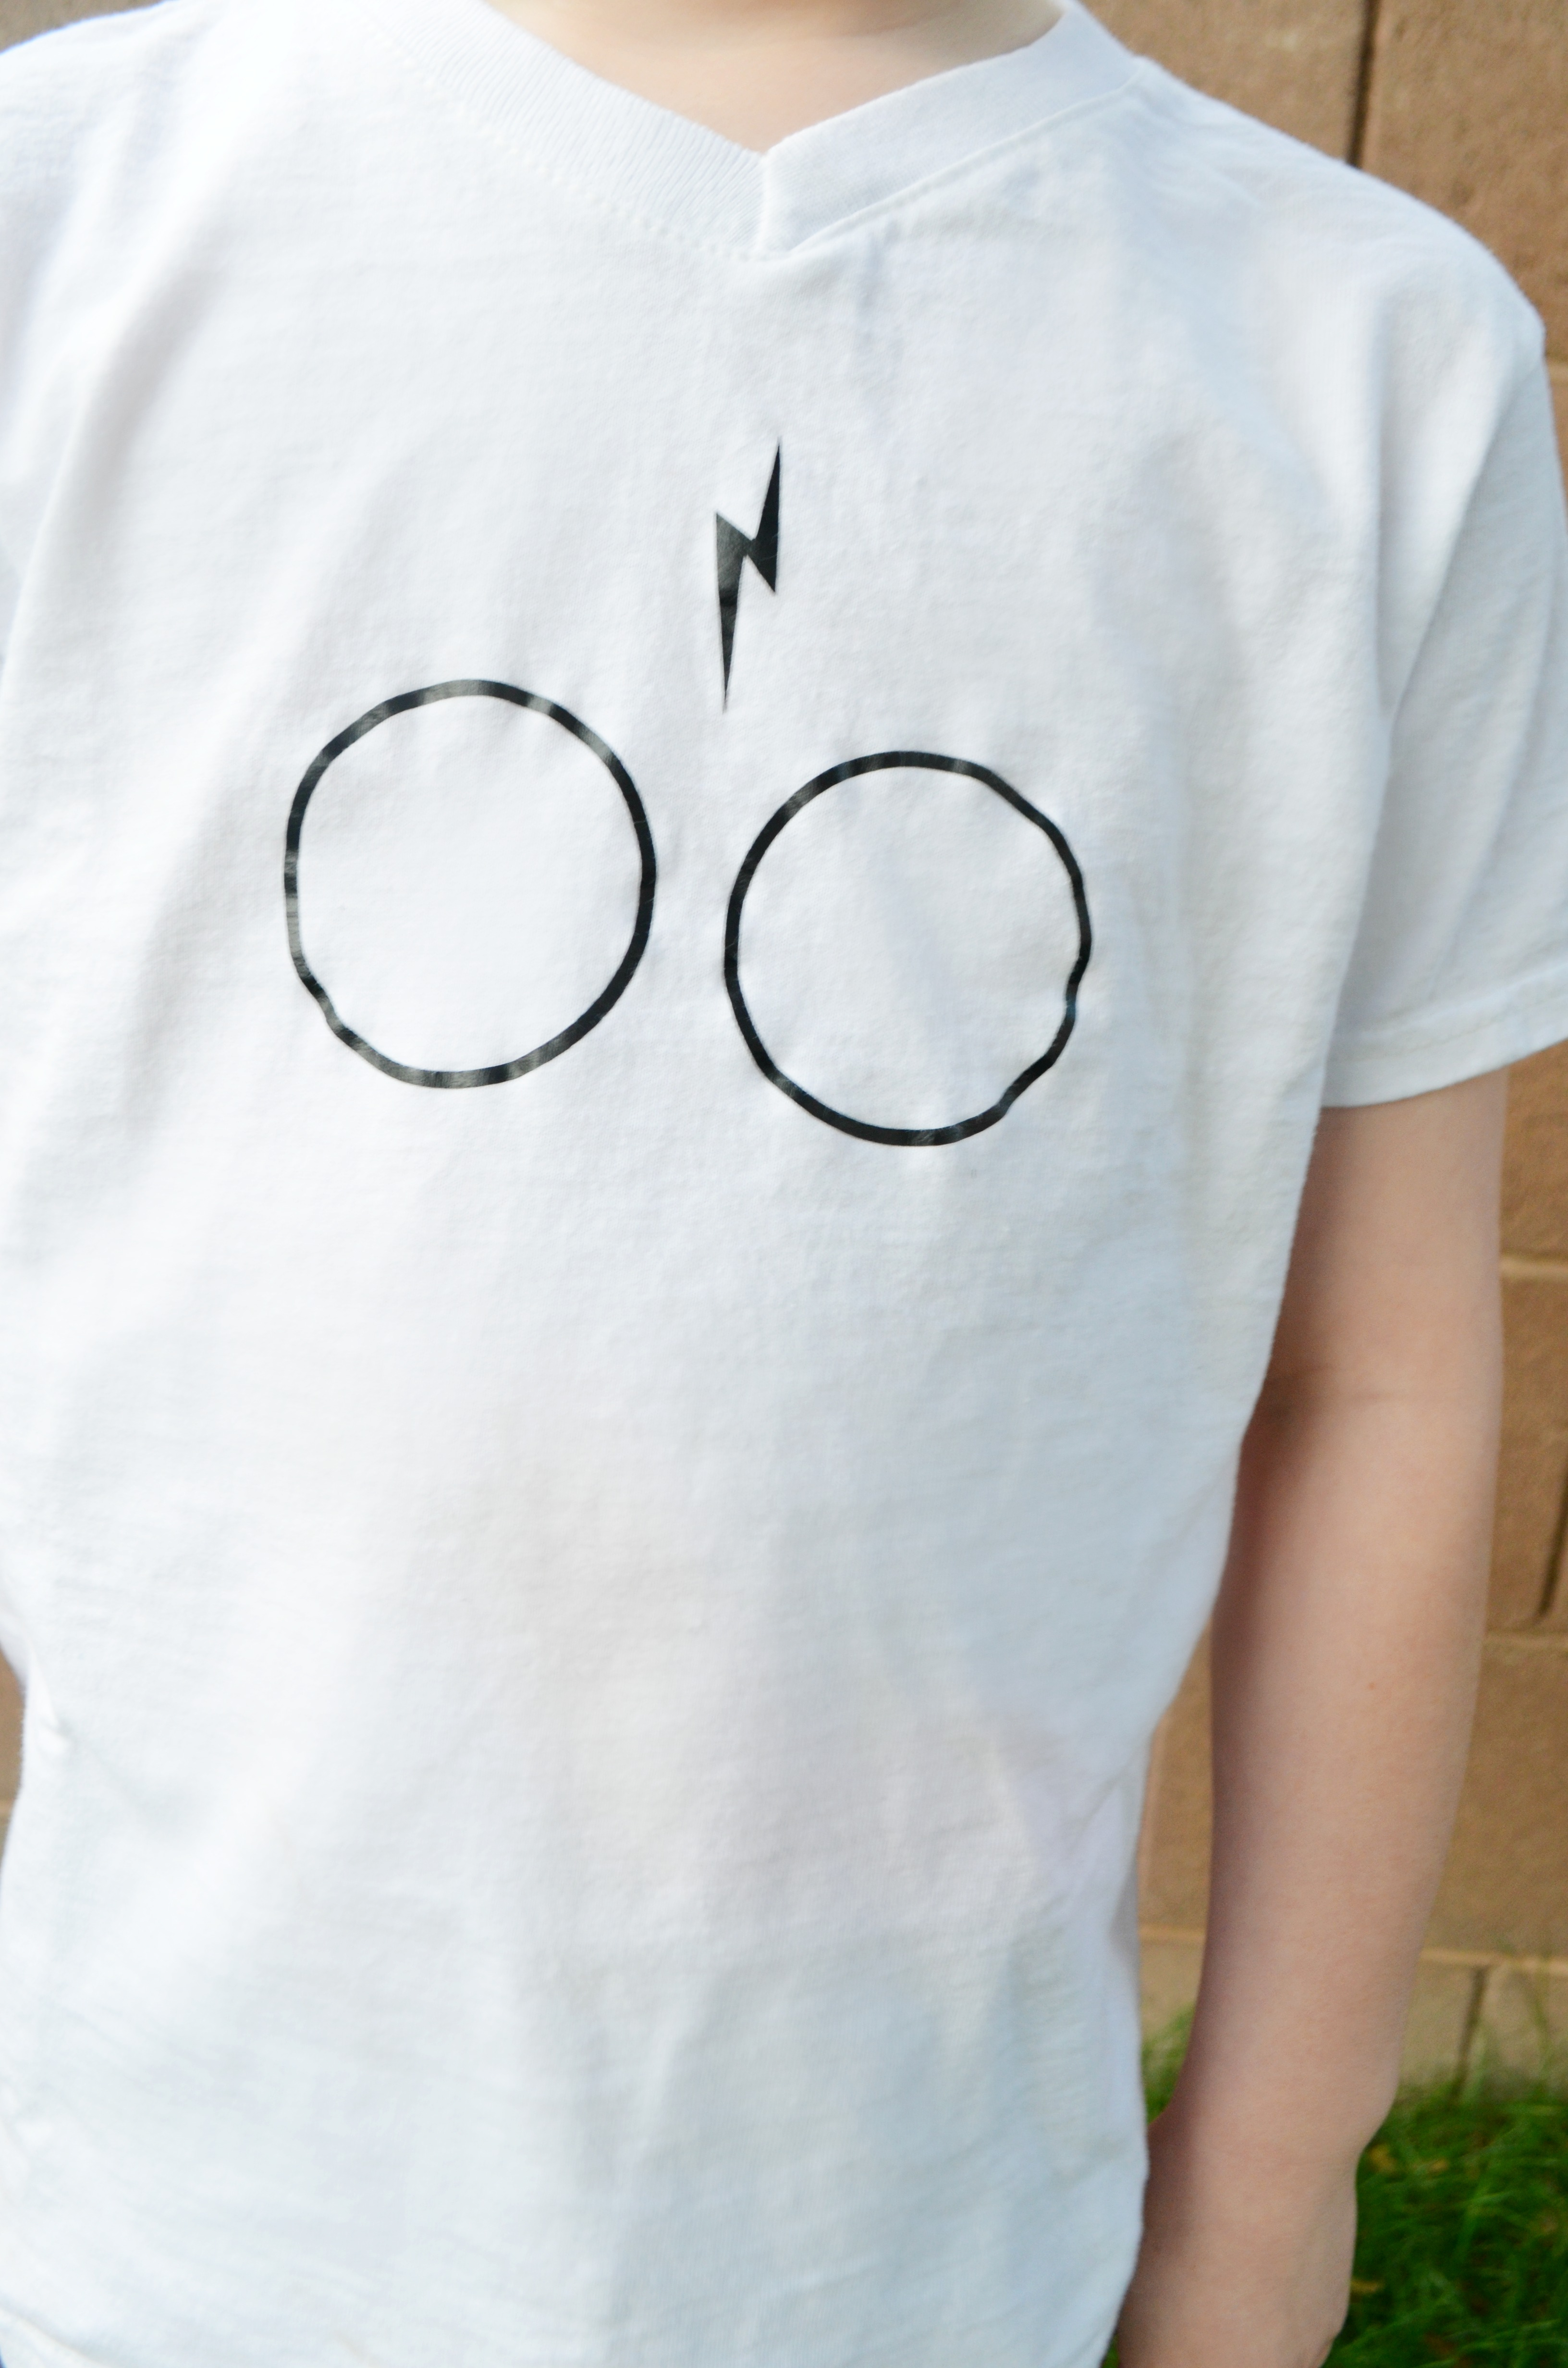 Harry Potter Merchandise: Clothing, Funko Pop & More | BoxLunchMobile Friendly· Free Shipping On $75+· $9 Funko Pop VinylsTypes: Apparel, Accessories, Unique Home Items, Novelty Gifts.